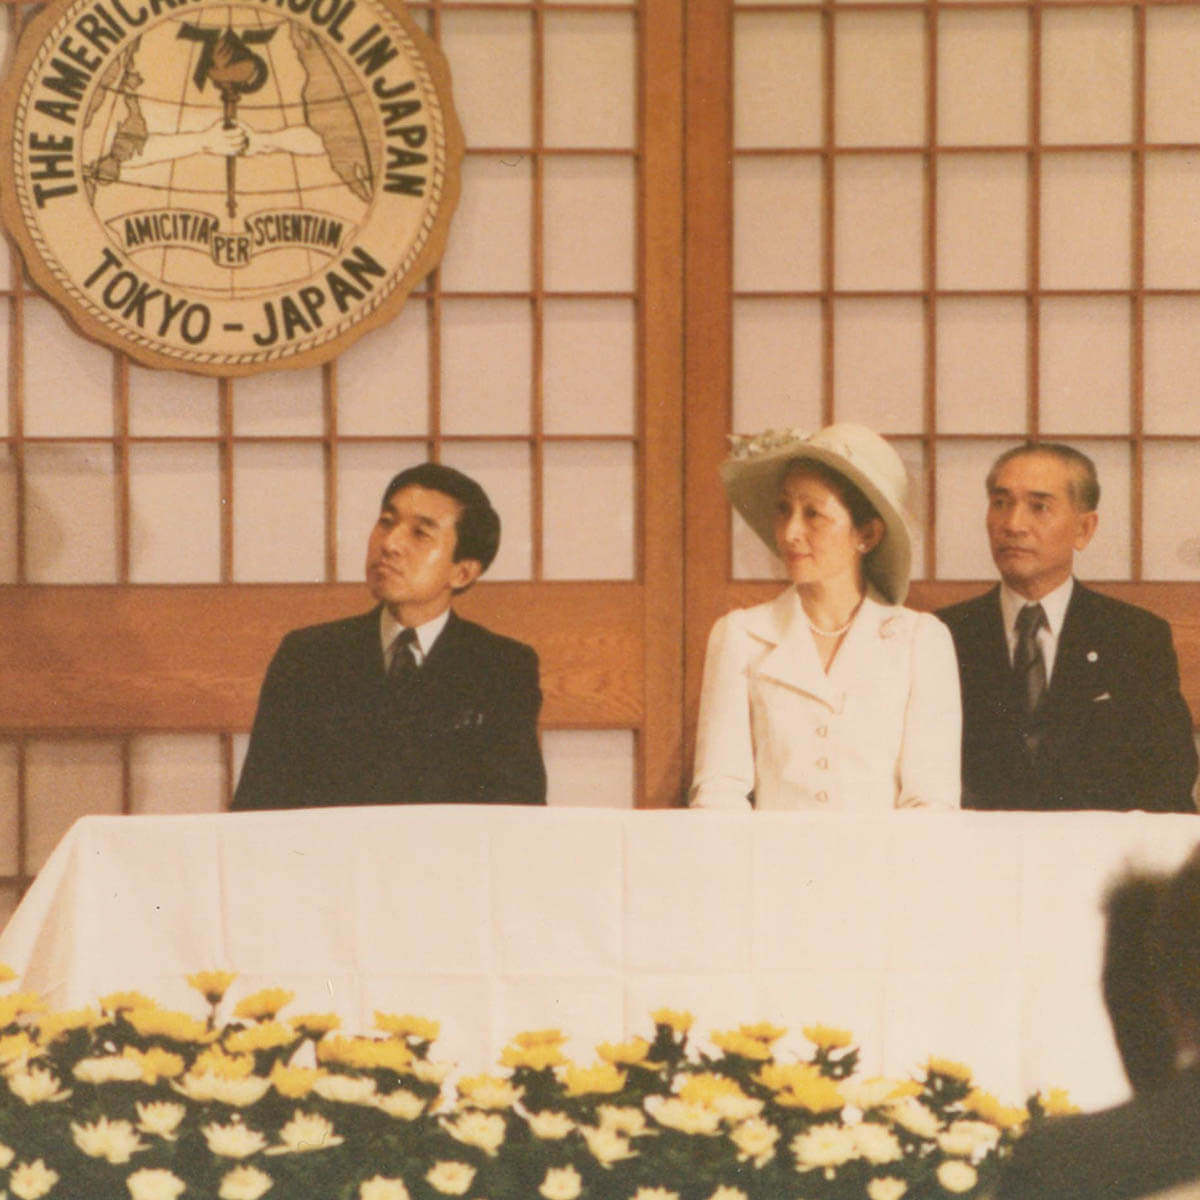 Crown Prince Akihito and His Wife Sit at a Table During ASIJ's 75 Anniversary Celebration